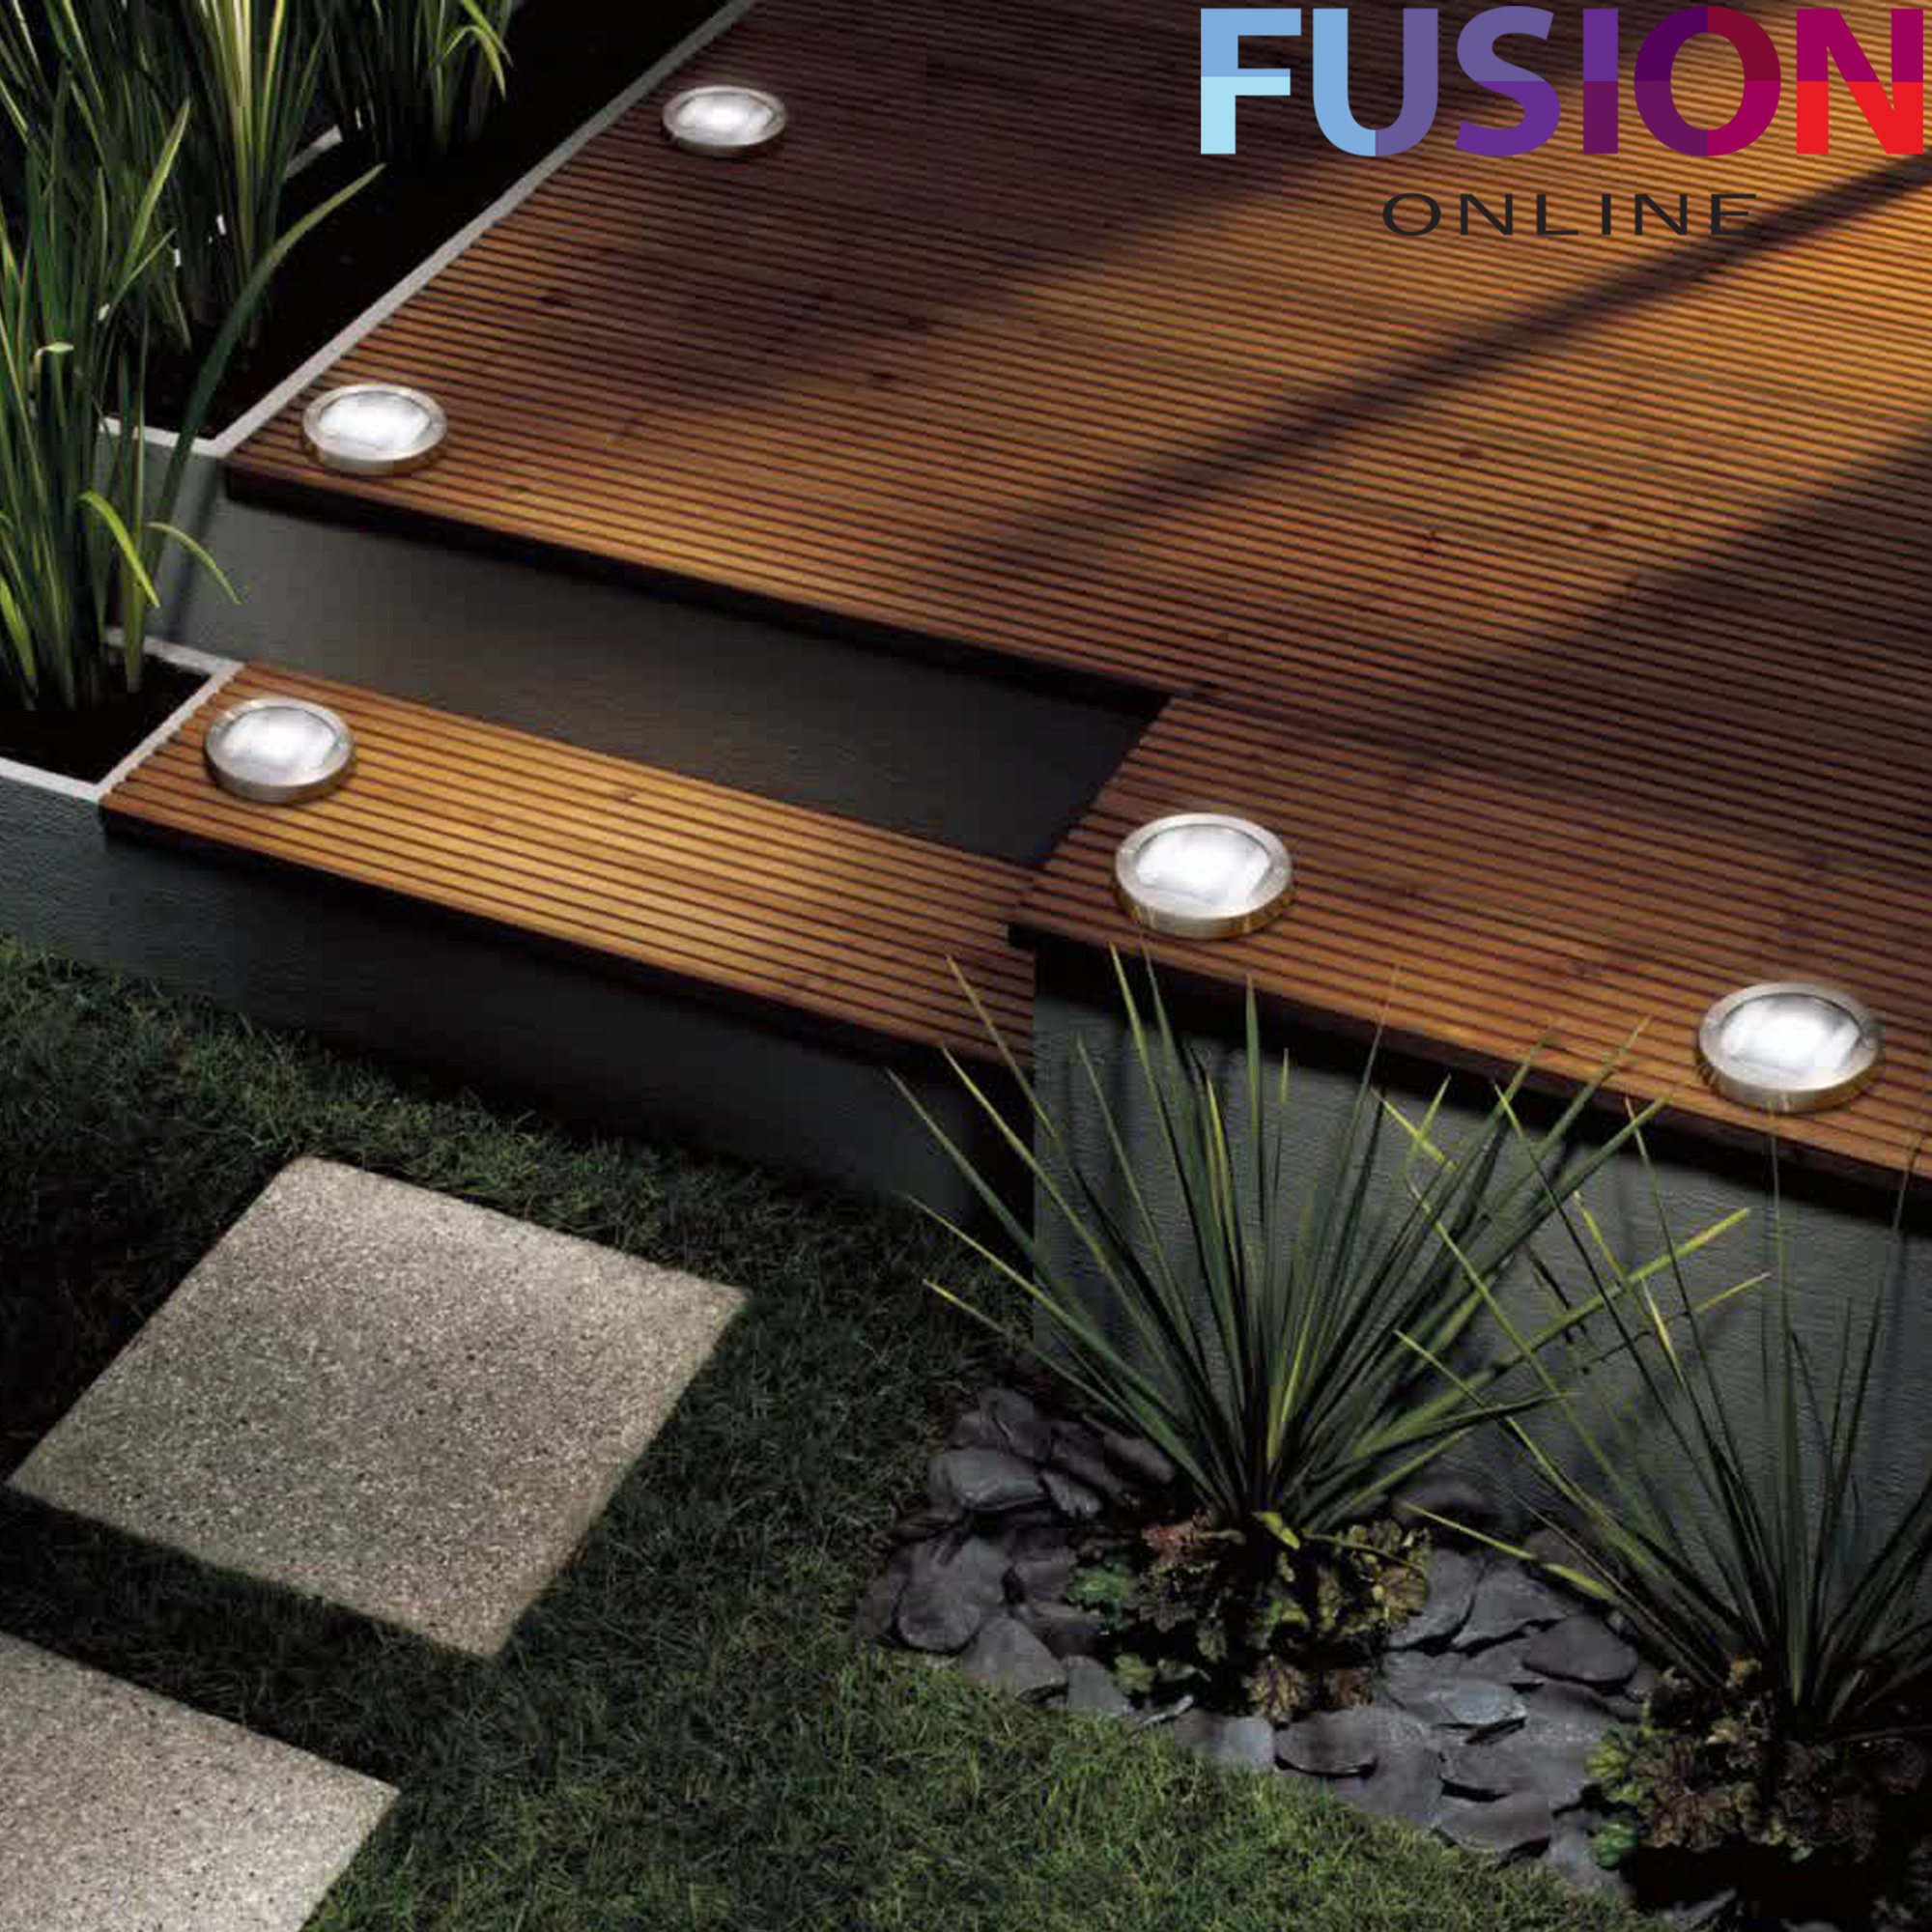 Led solar powered deck lights decking garden driveway outdoor led solar powered deck lights decking garden driveway outdoor wireless lighting aloadofball Image collections